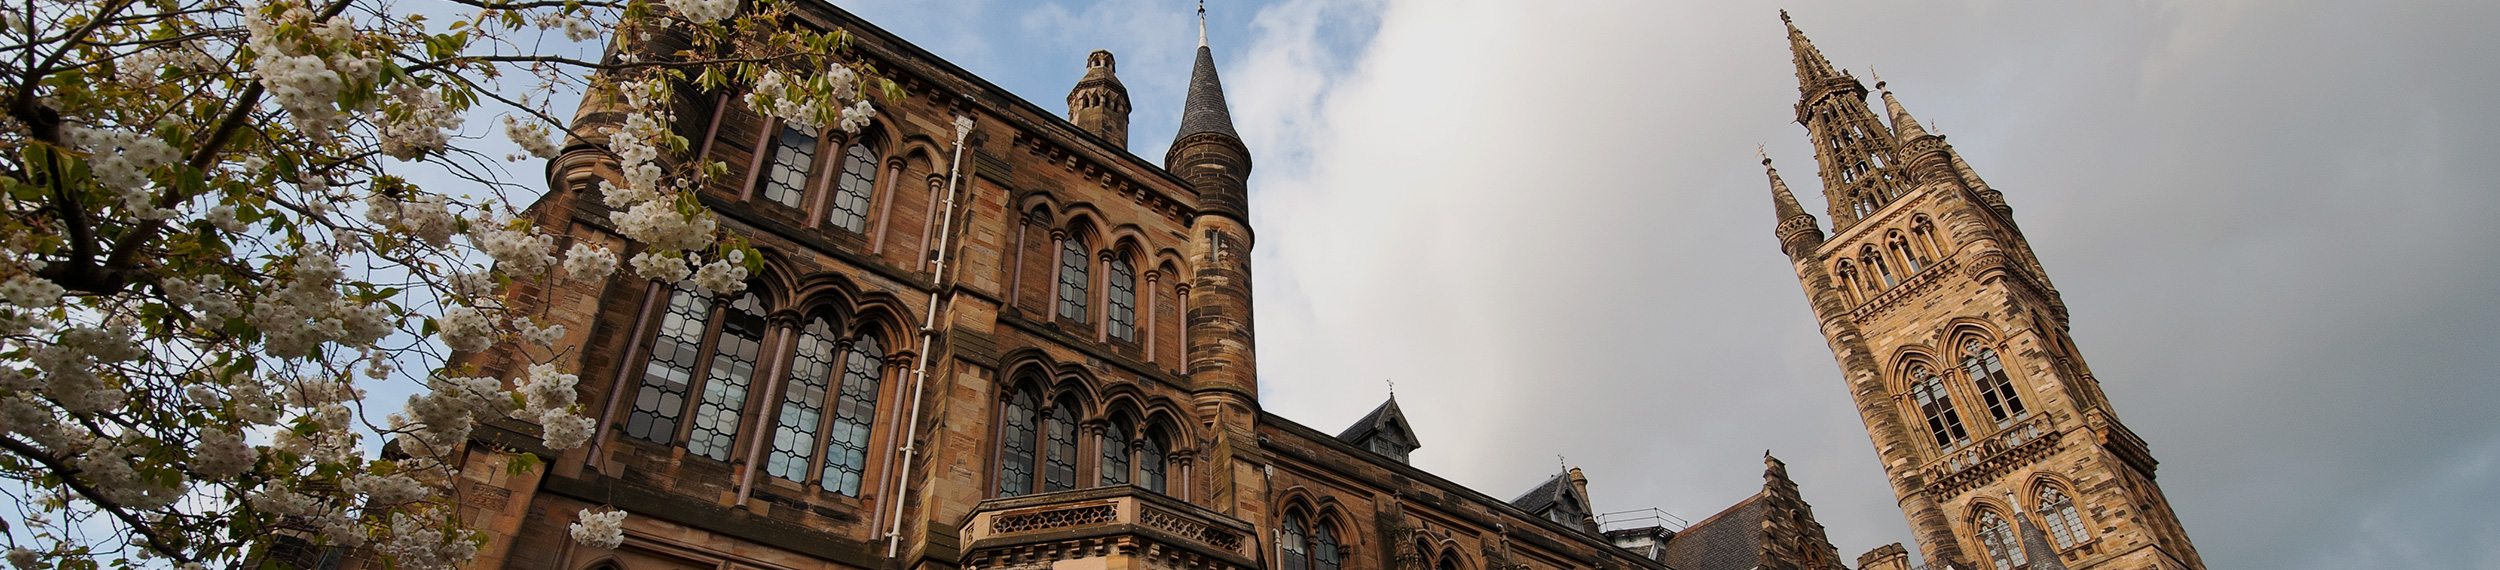 Looking up at the exterior of the main building of the University of Glasgow, Scotland.